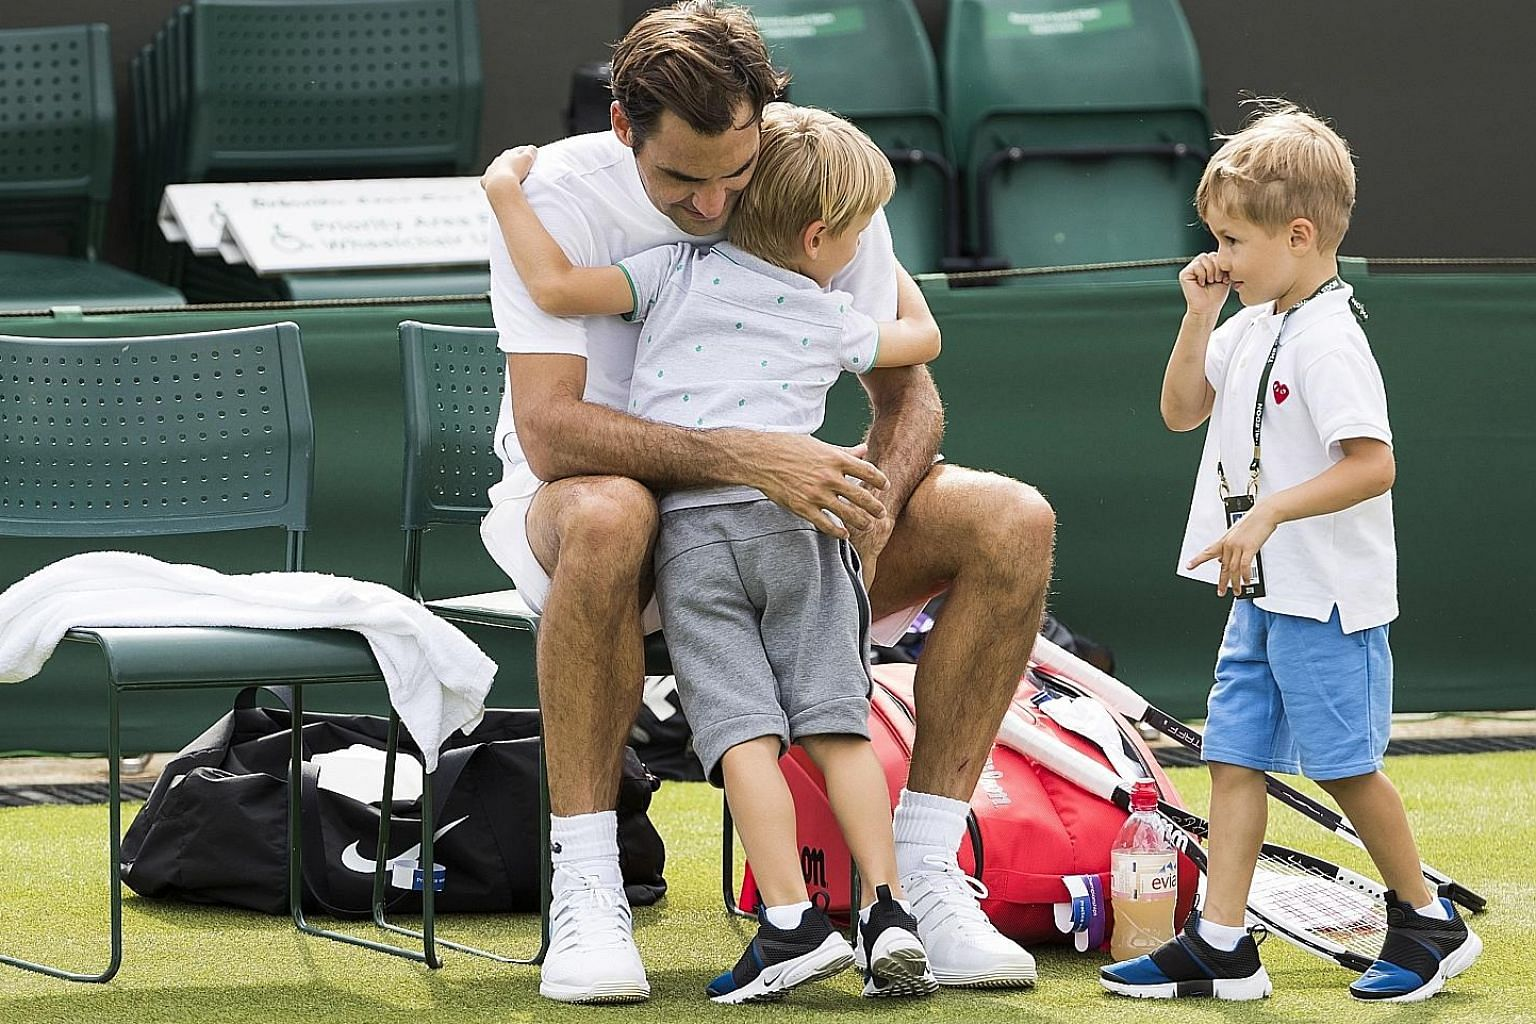 Roger Federer hugging his twin boys, Leo and Lenny, at the end of a training session in Wimbledon on Thursday. The defending champion opens his bid for a record ninth Wimbledon crown by facing Serbia's Dusan Lajovic on Monday.